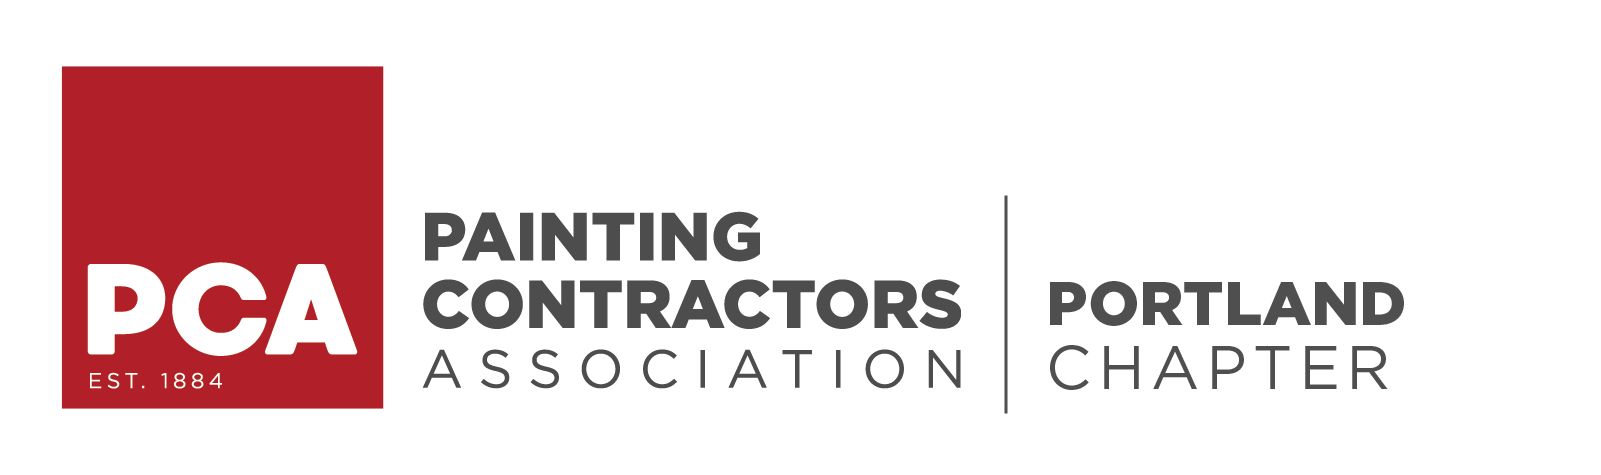 Painting Contractors Association Portland Chapter